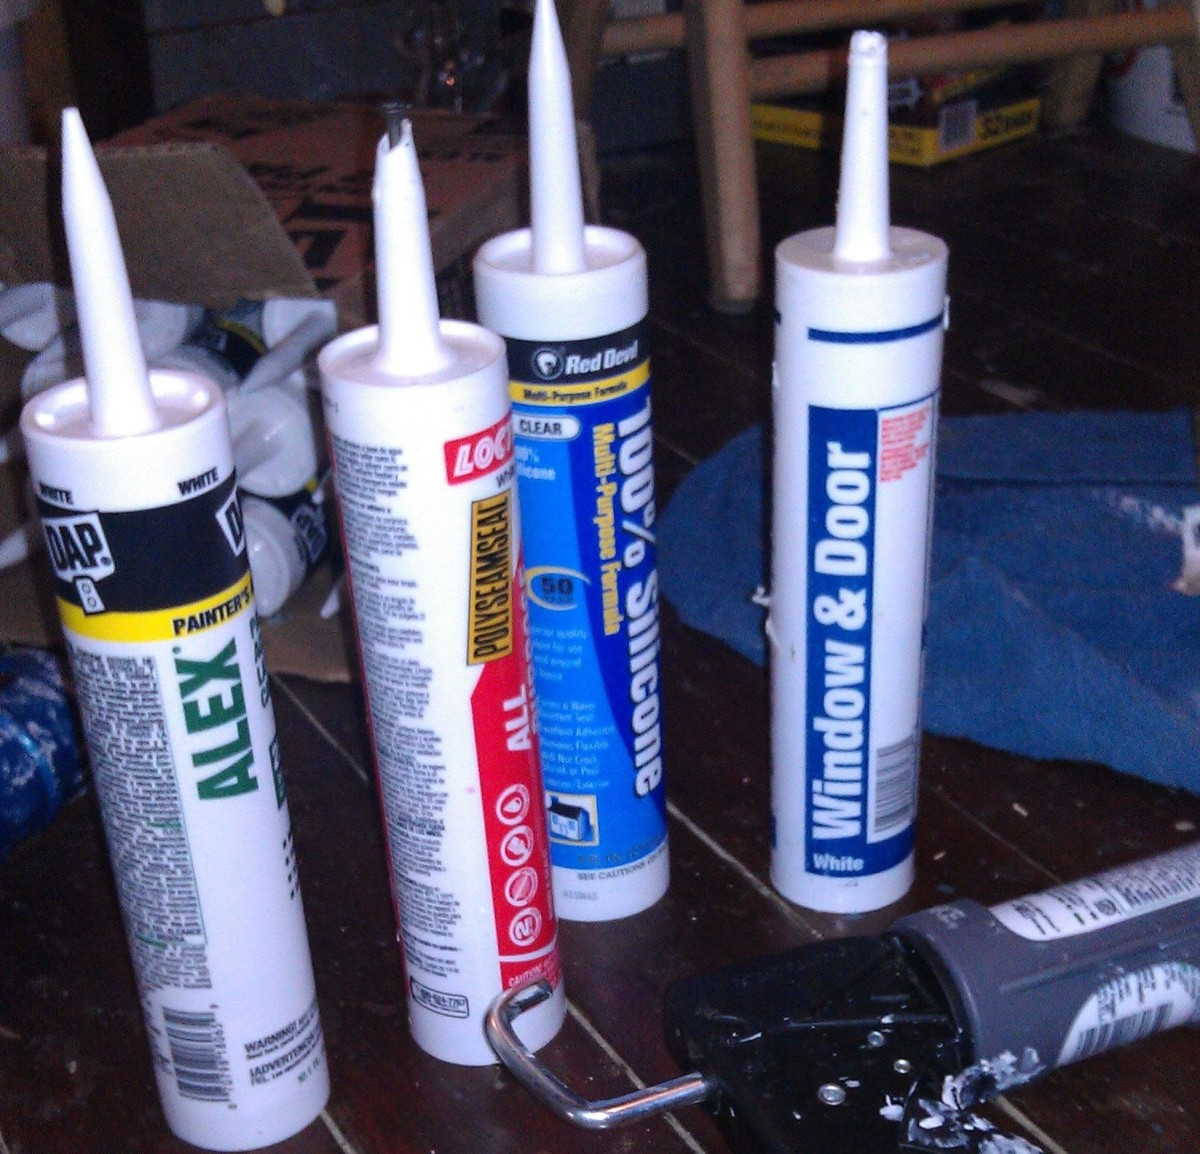 How use caulk to seal against bed bugs.